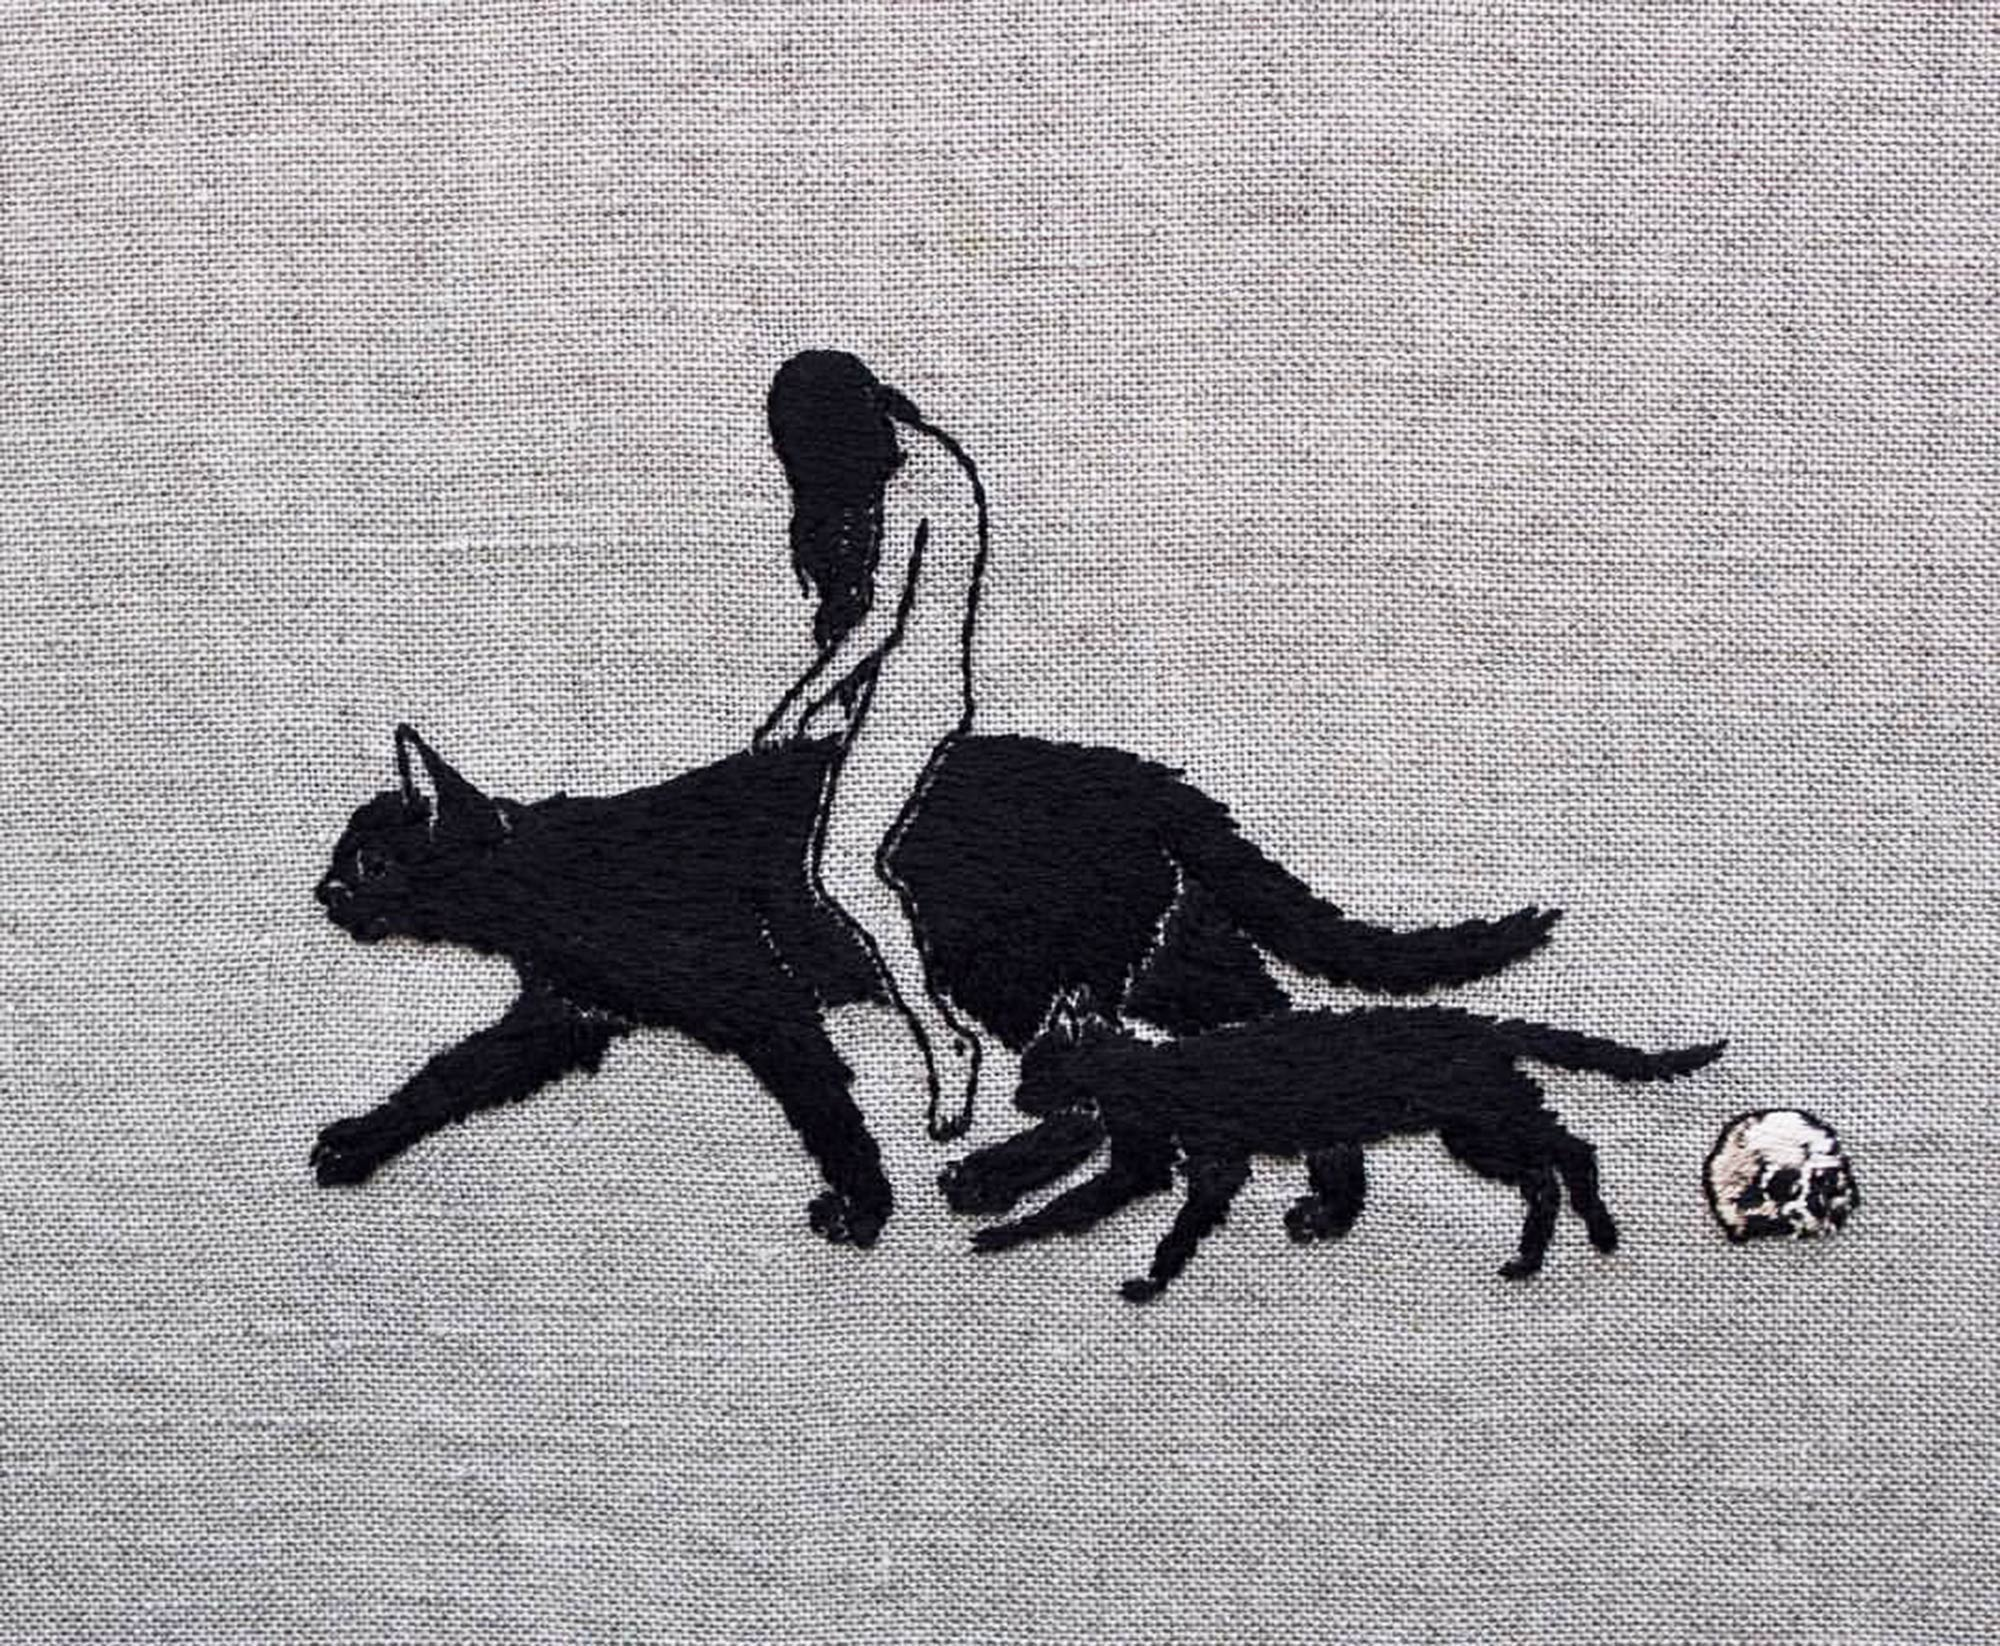 Mysterious, Occult-Themed Embroidery by Adipocere